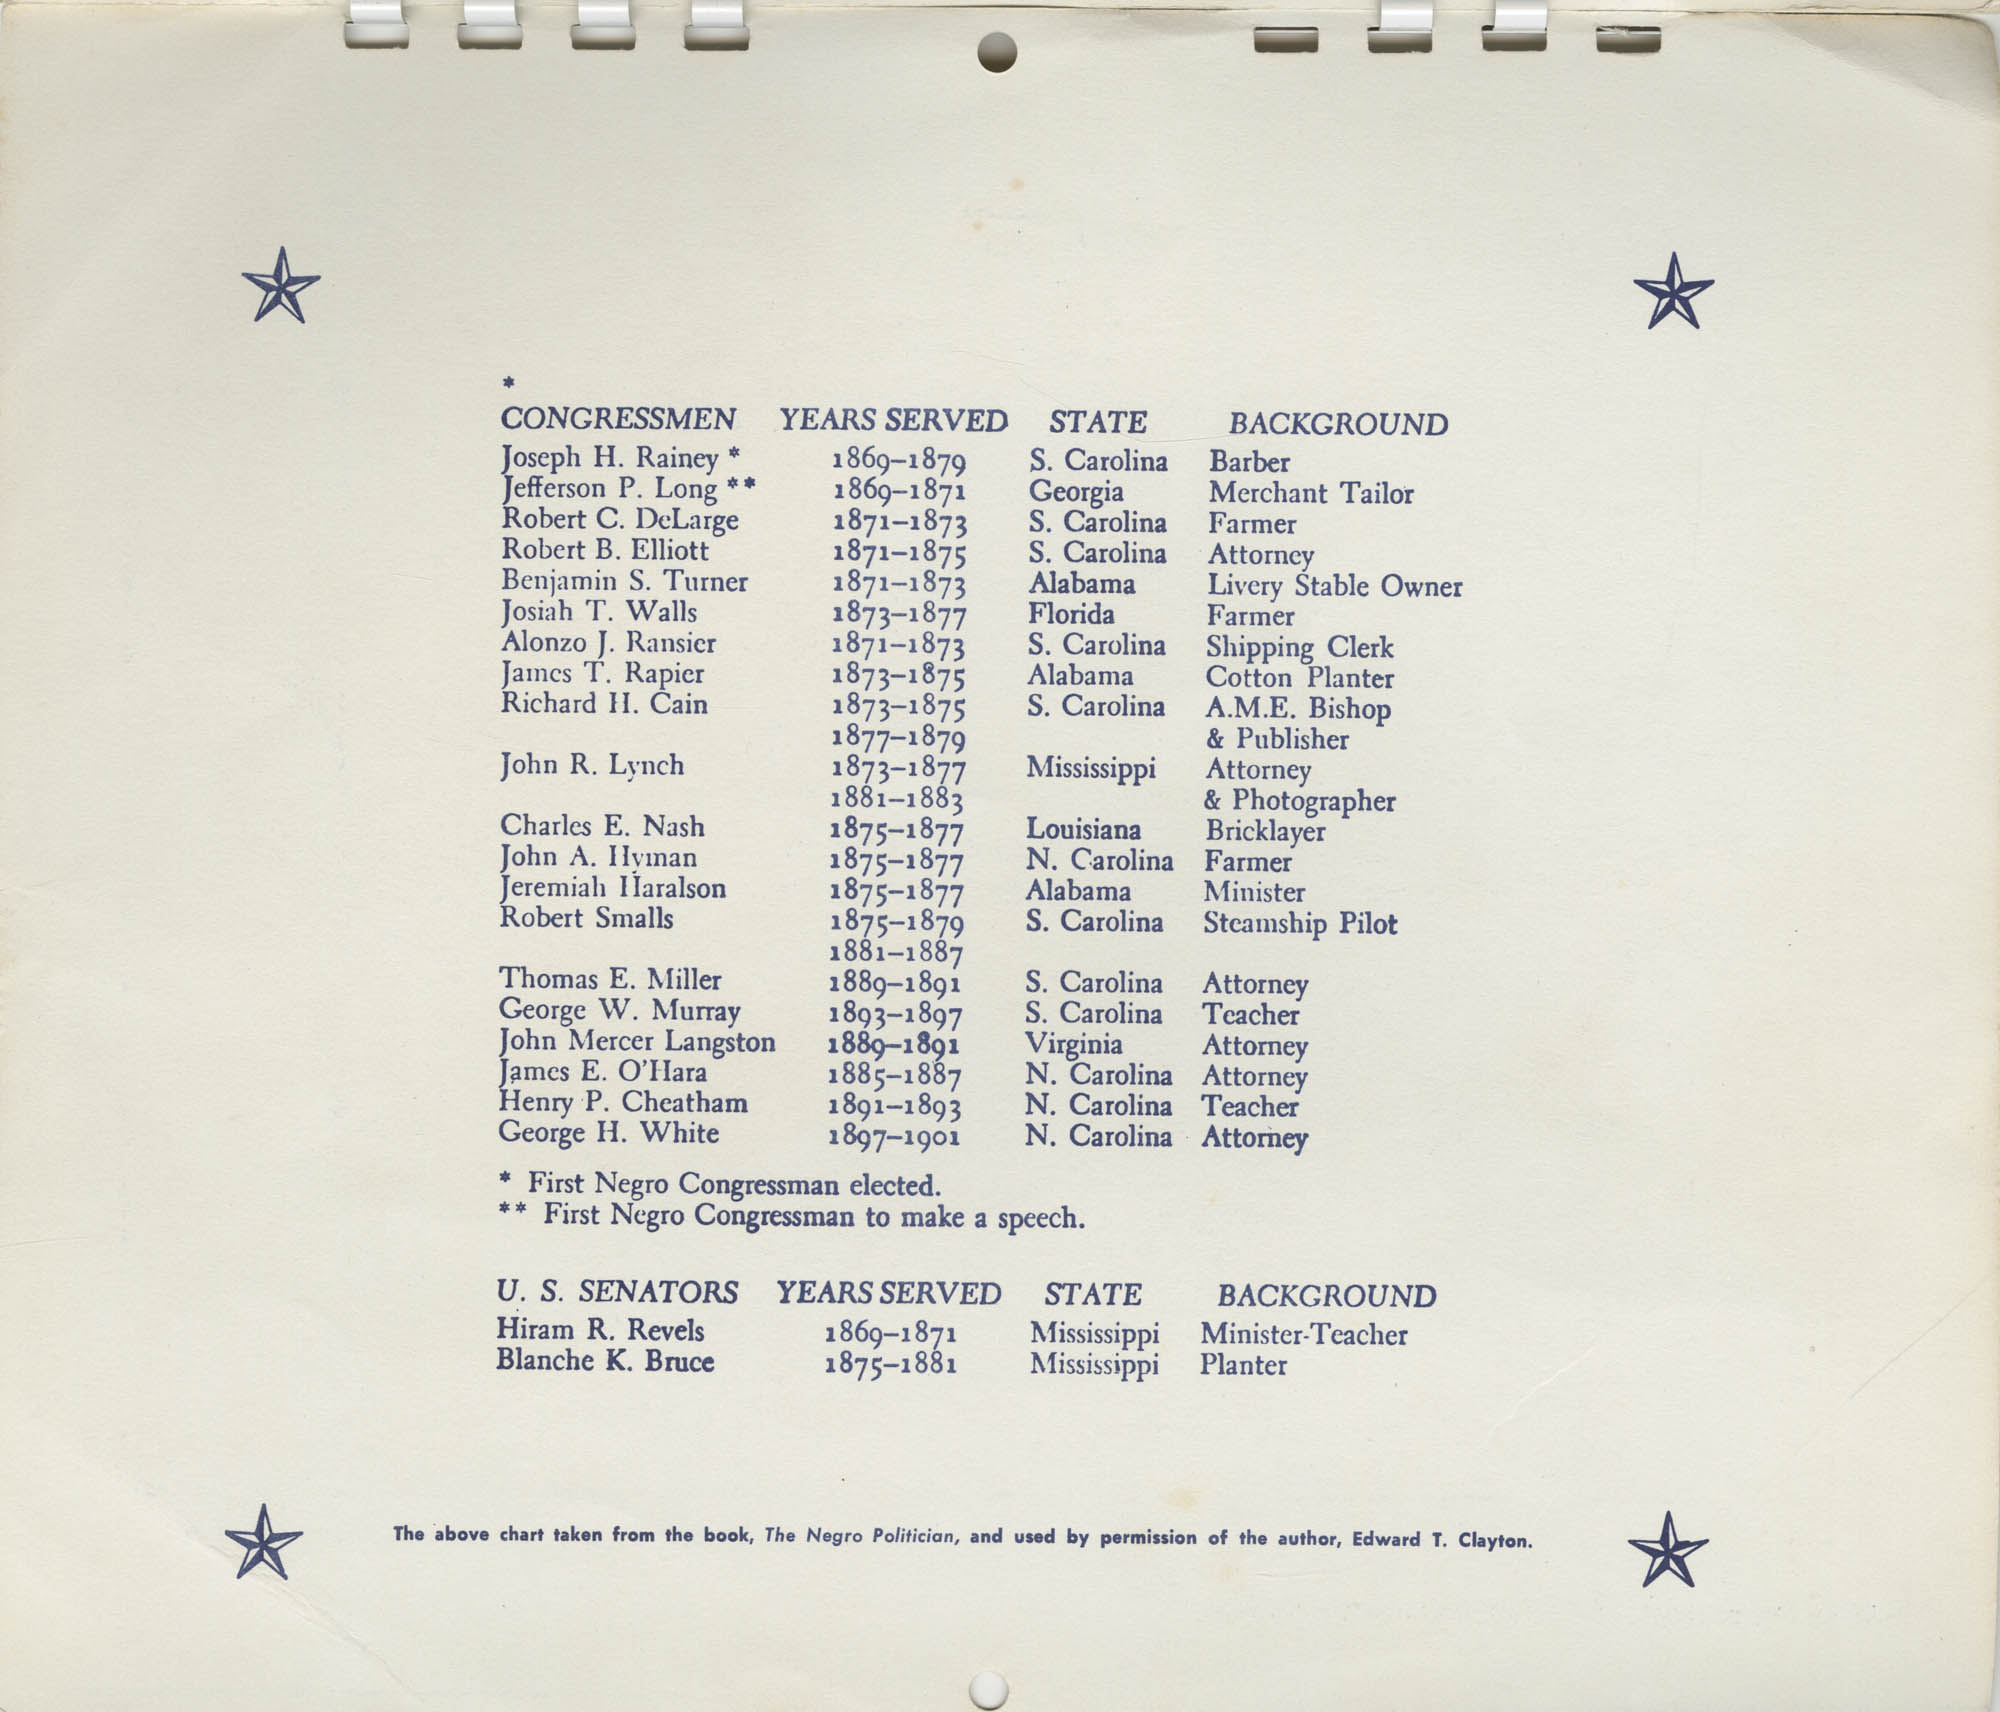 Southern Christian Leadership Conference Newsletter Calendar, 1965, Appendix Bottom